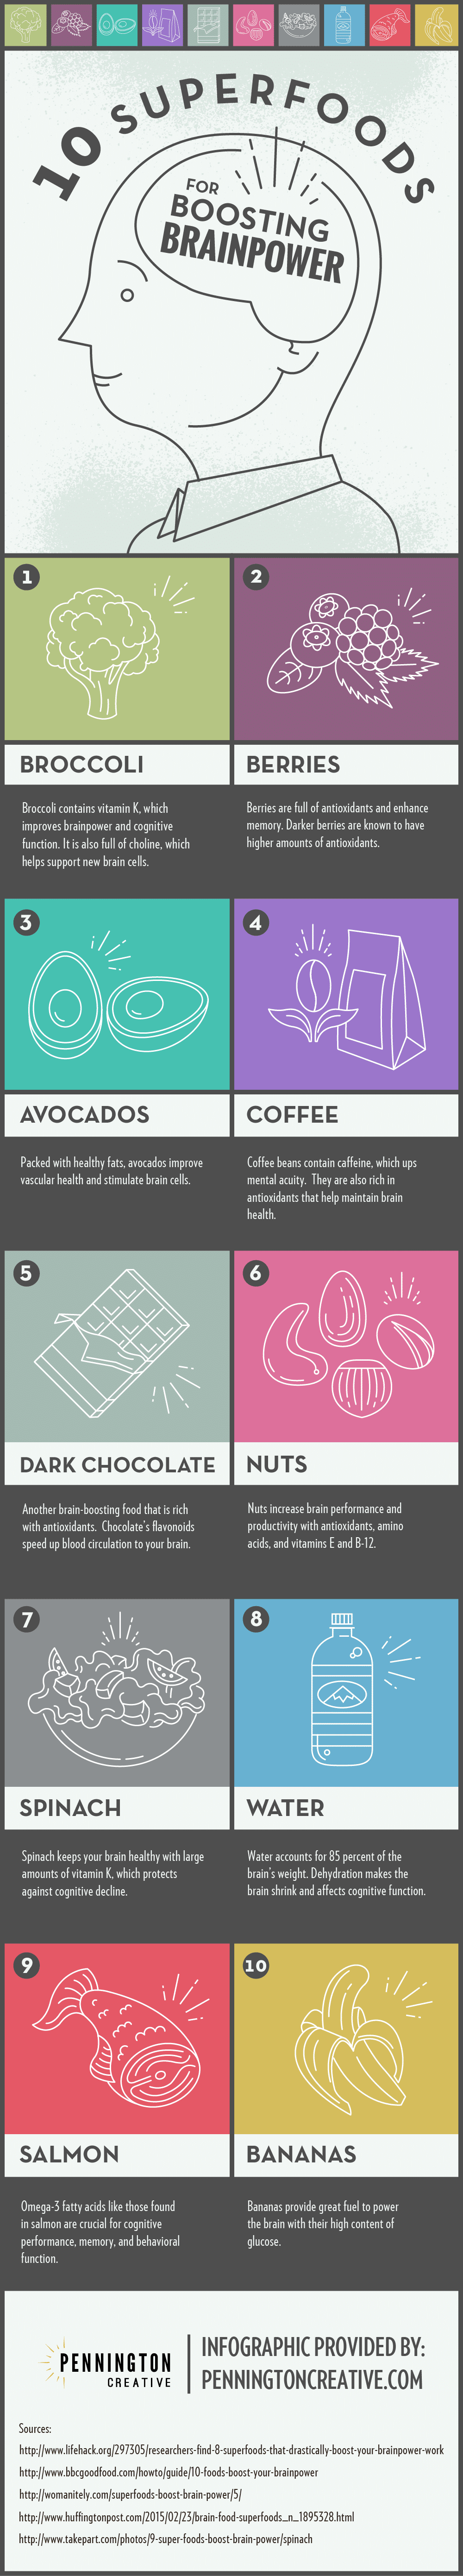 10 Superfoods for Boosting Brainpower Infographic